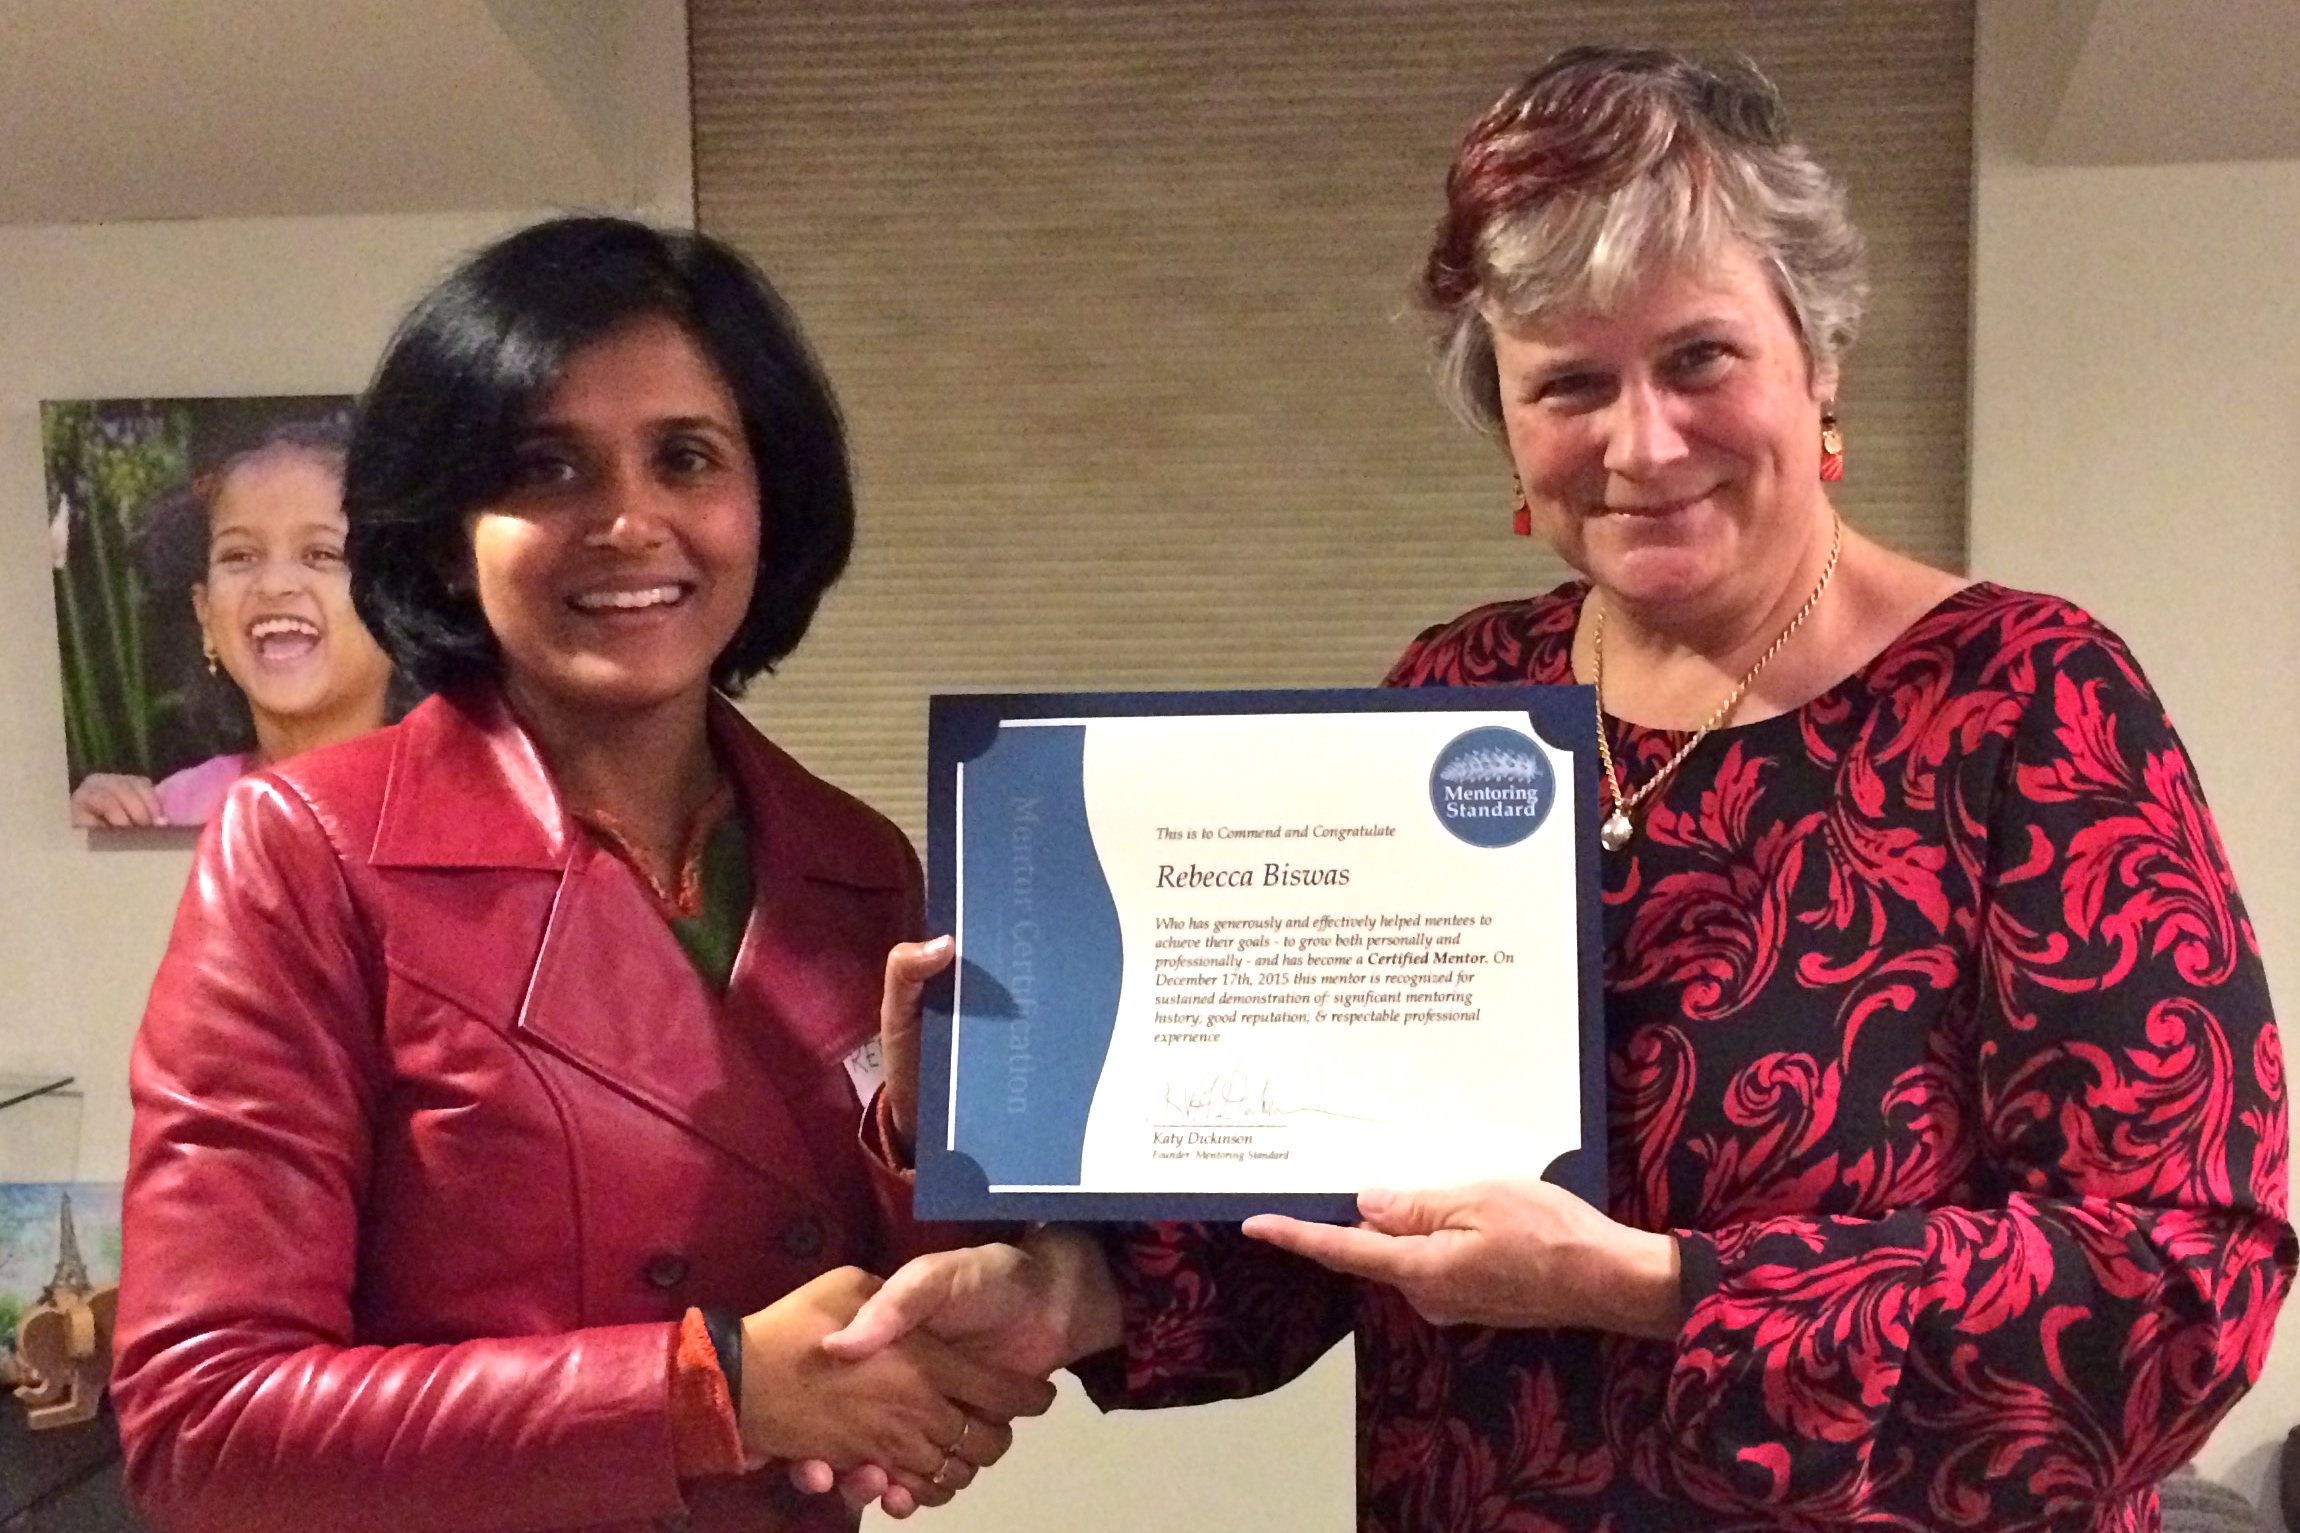 Rebecca Biswas received her Mentor Certificate from Katy Dickinson, December 2015